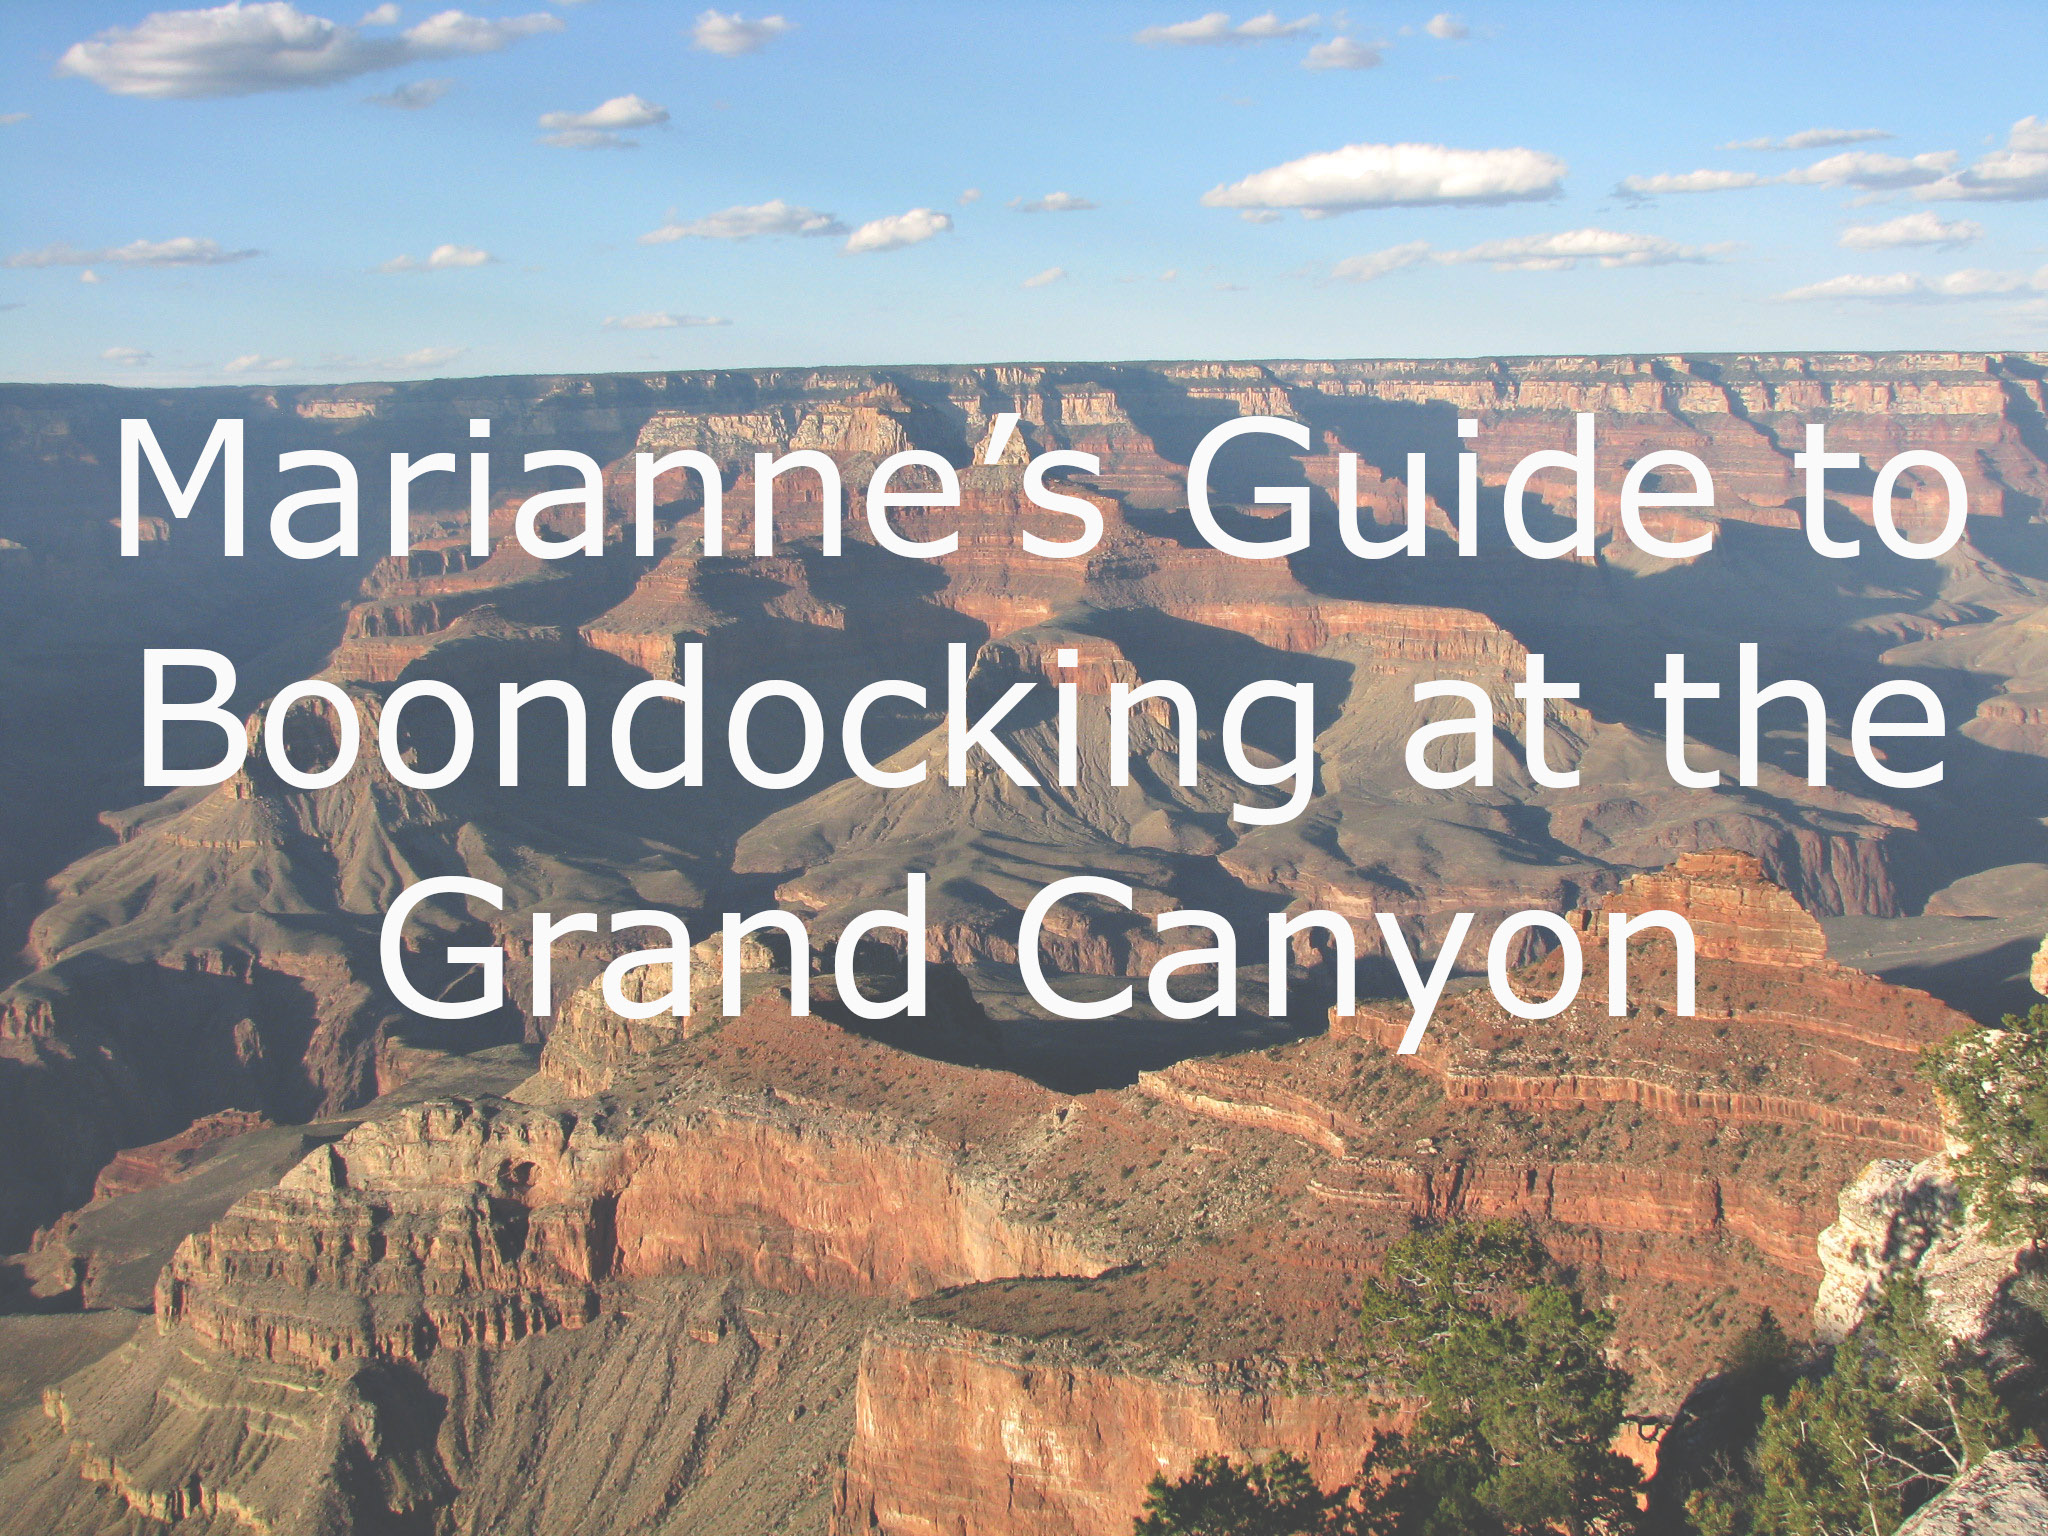 Marianne's Guide to Boondocking at the Grand Canyon